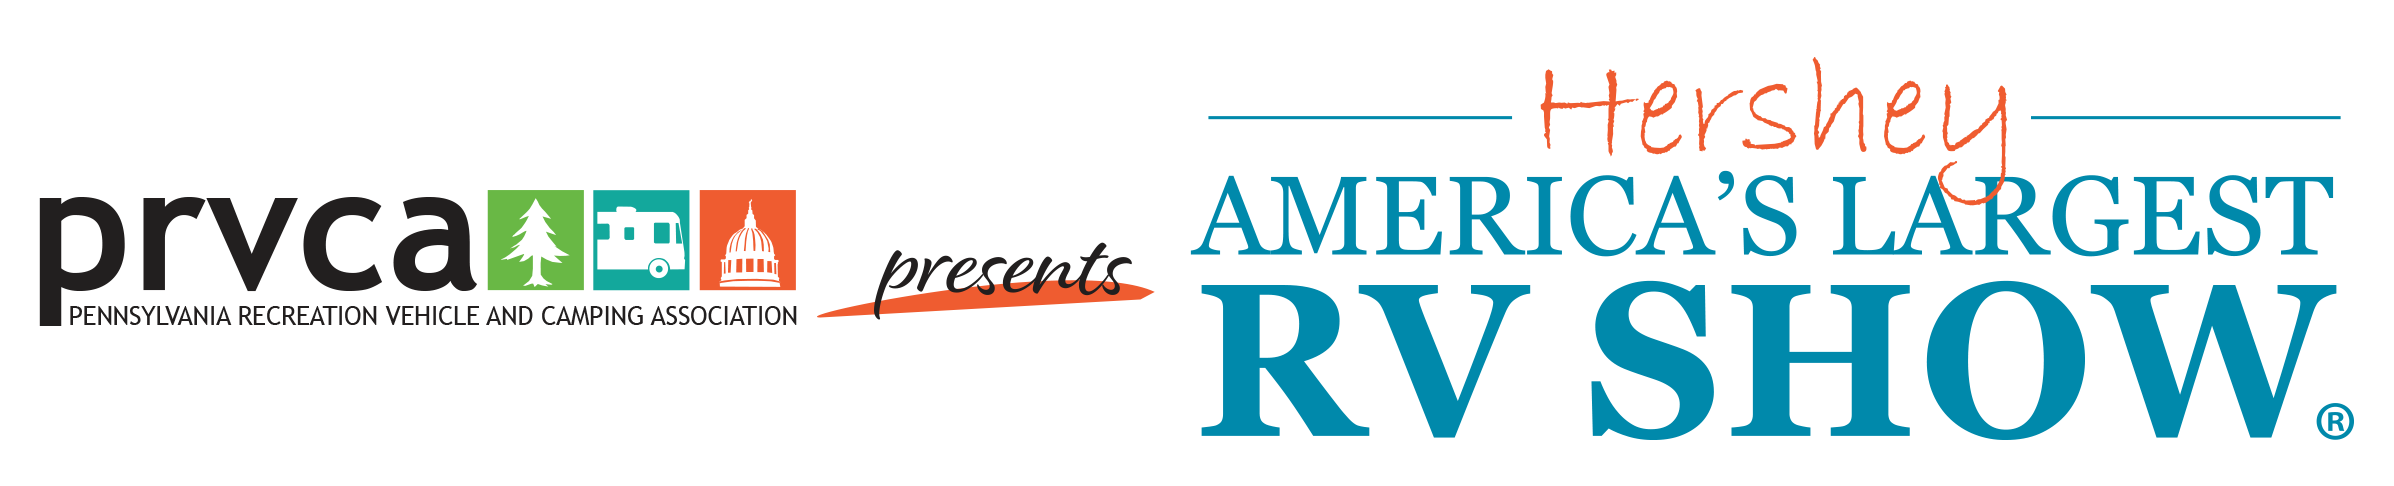 PRVCA presents America's Largest RV Show